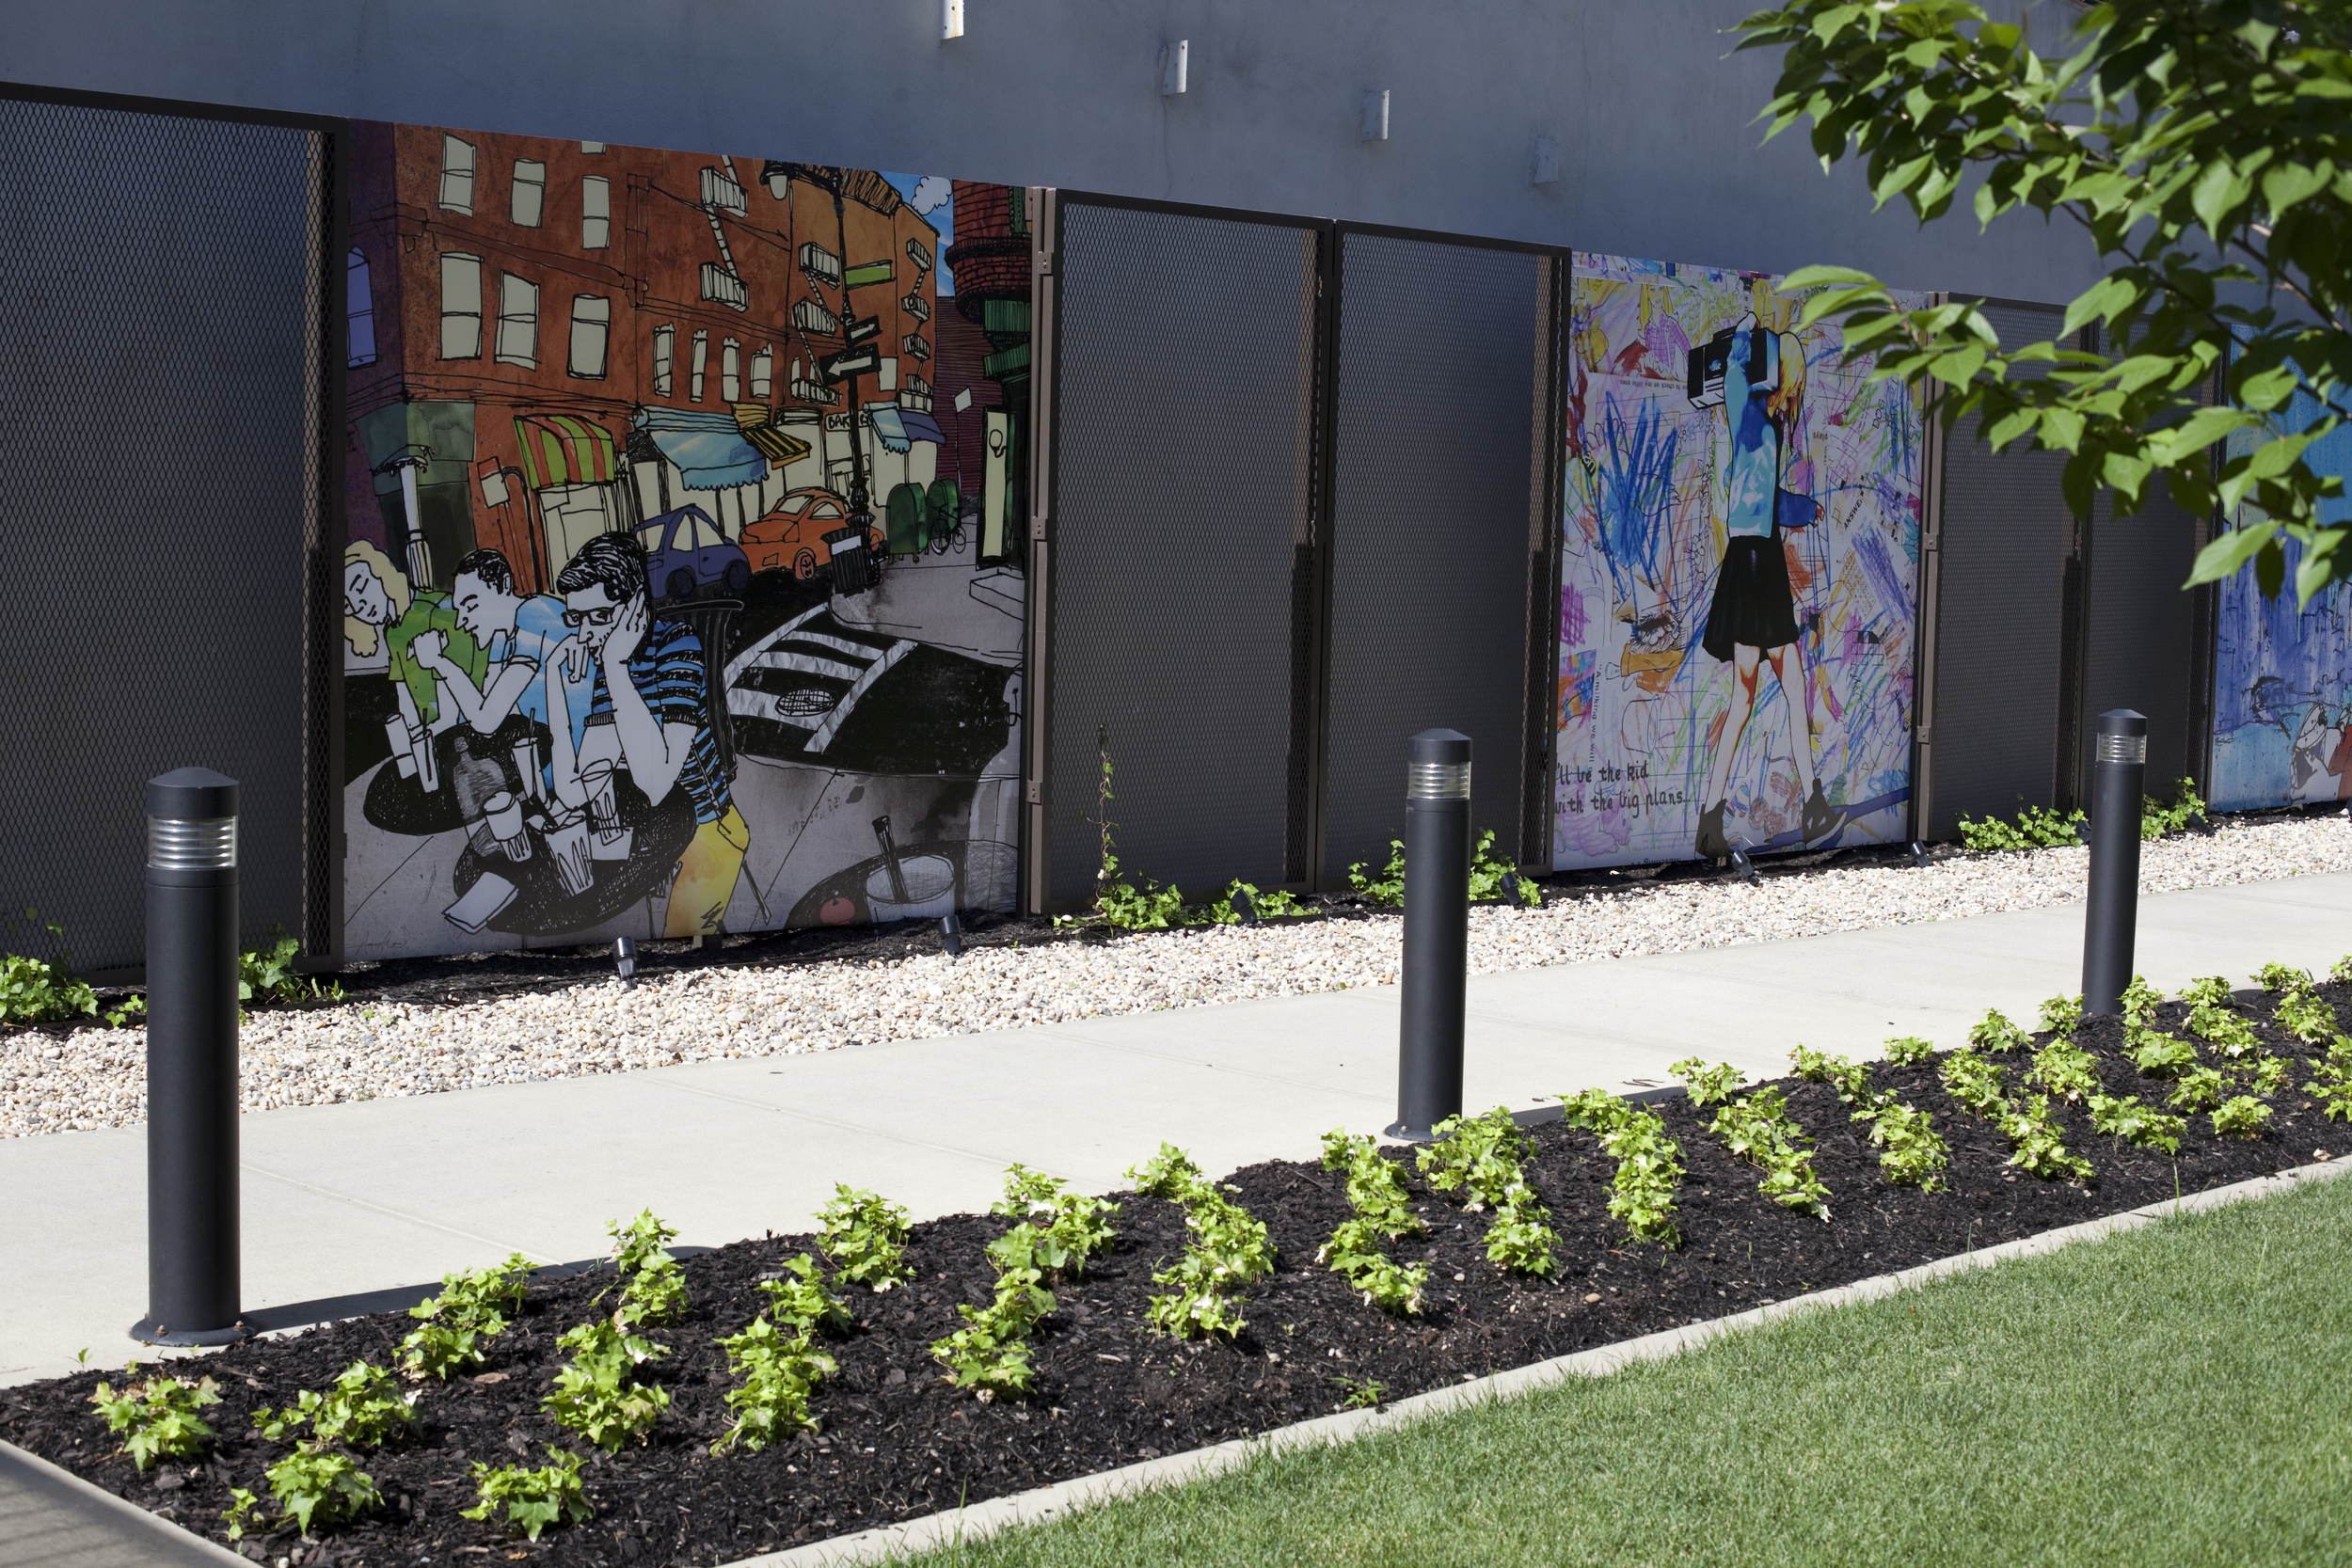 424 BEDFORD - Curated by Indiewalls